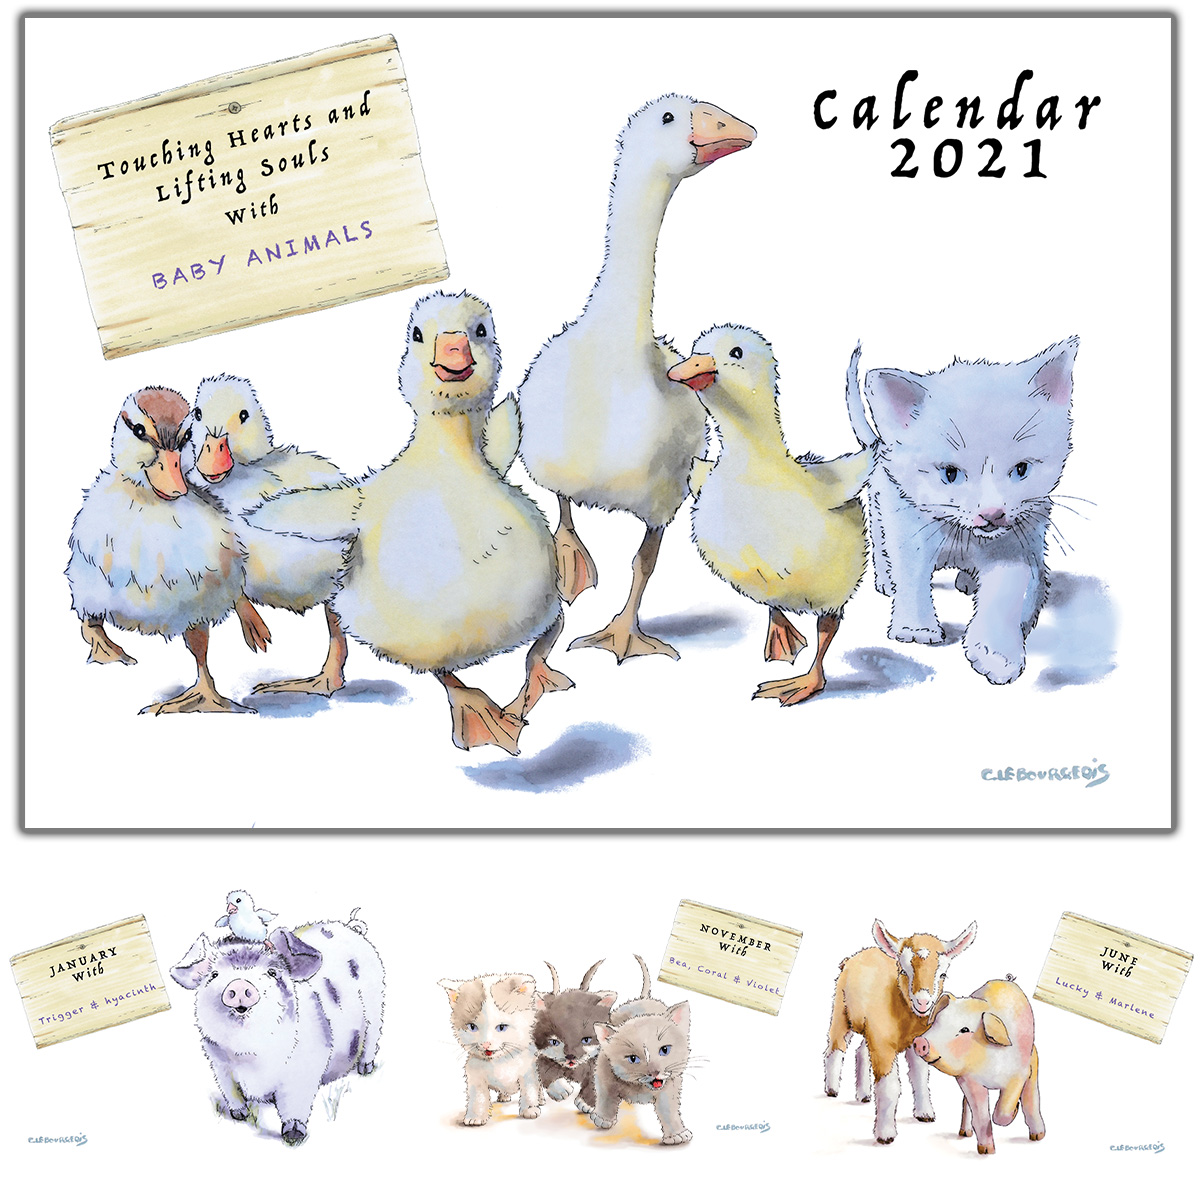 Festive season and baby animals calendar!